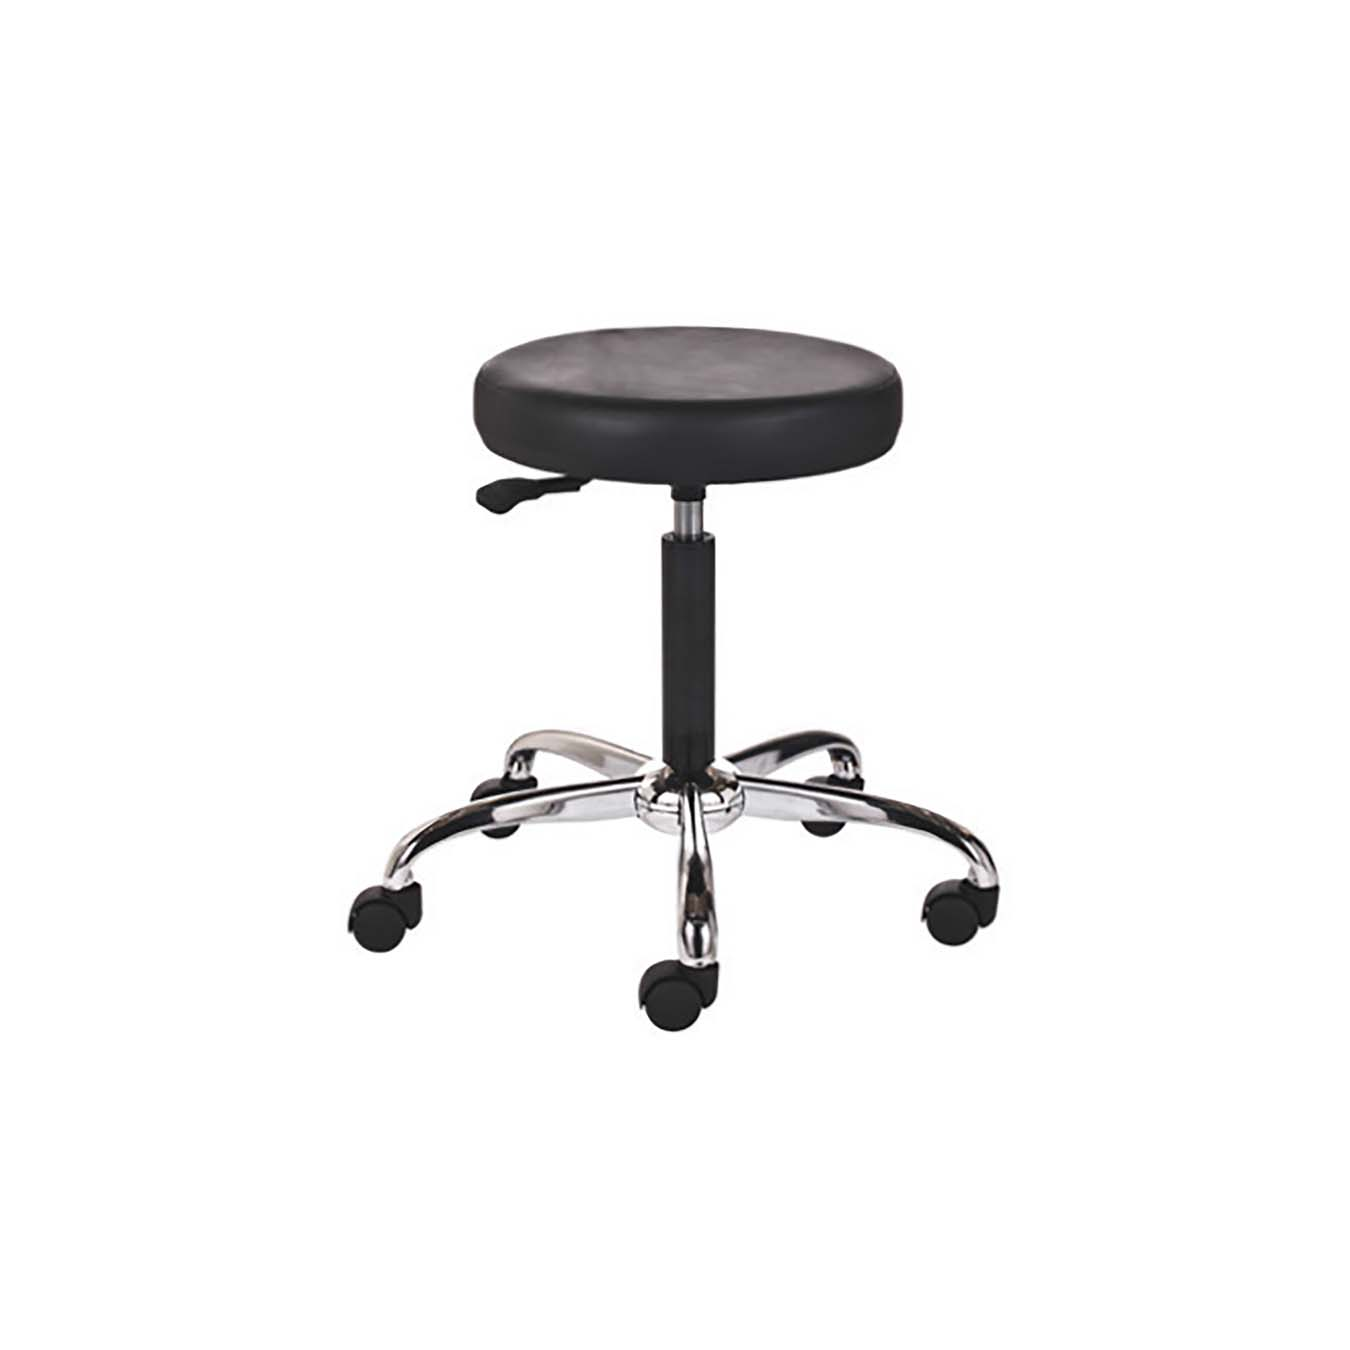 AX262_1_Surgeon-Stool-Hand-Operated_1